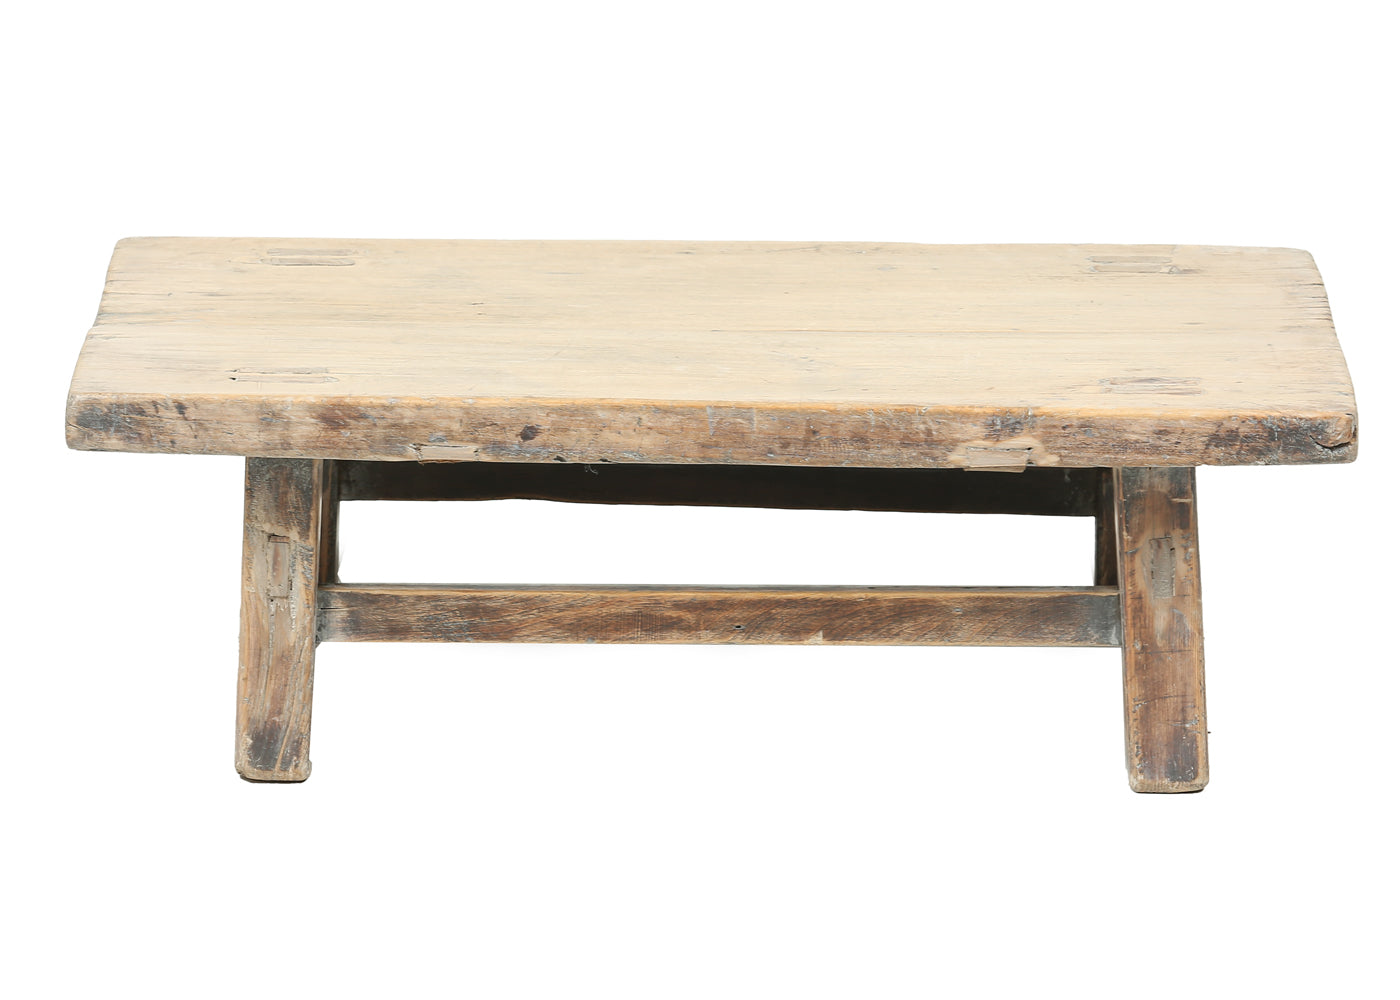 Chinese Poplar Coffee Table